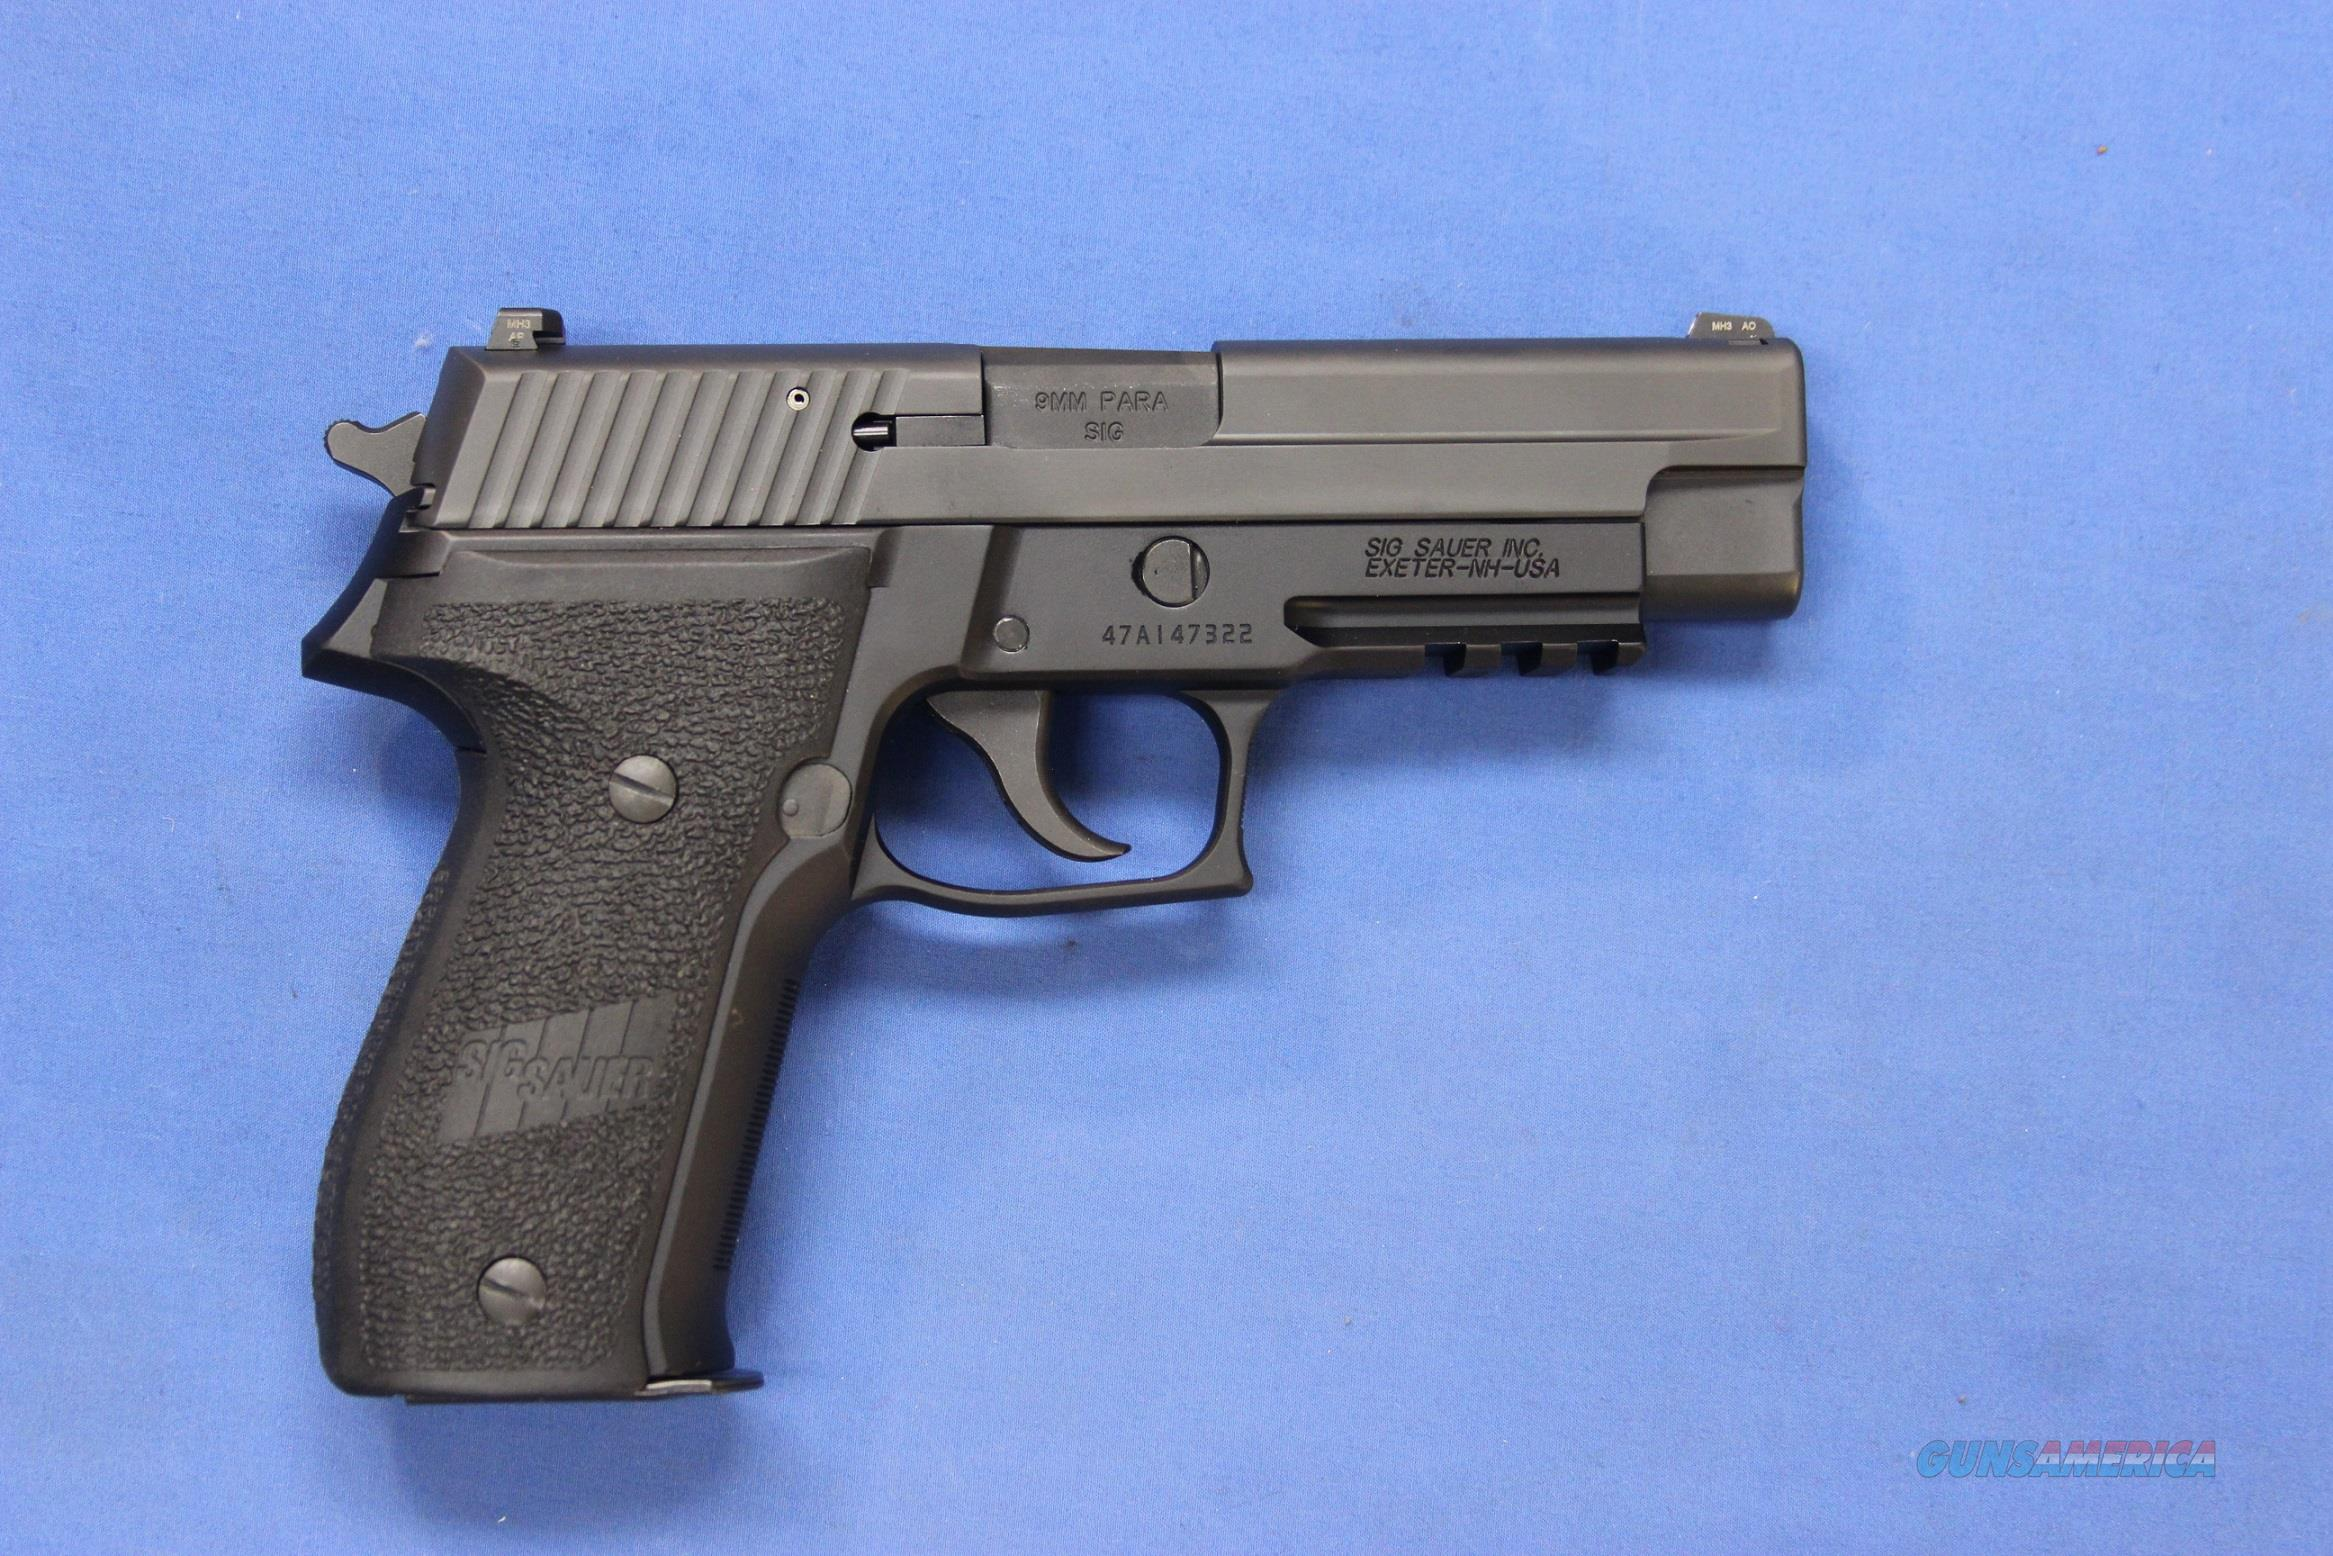 SIG SAUER P226 Mk-25 NAVY 9mm - LIKE NEW IN BOX  Guns > Pistols > Sig - Sauer/Sigarms Pistols > P226